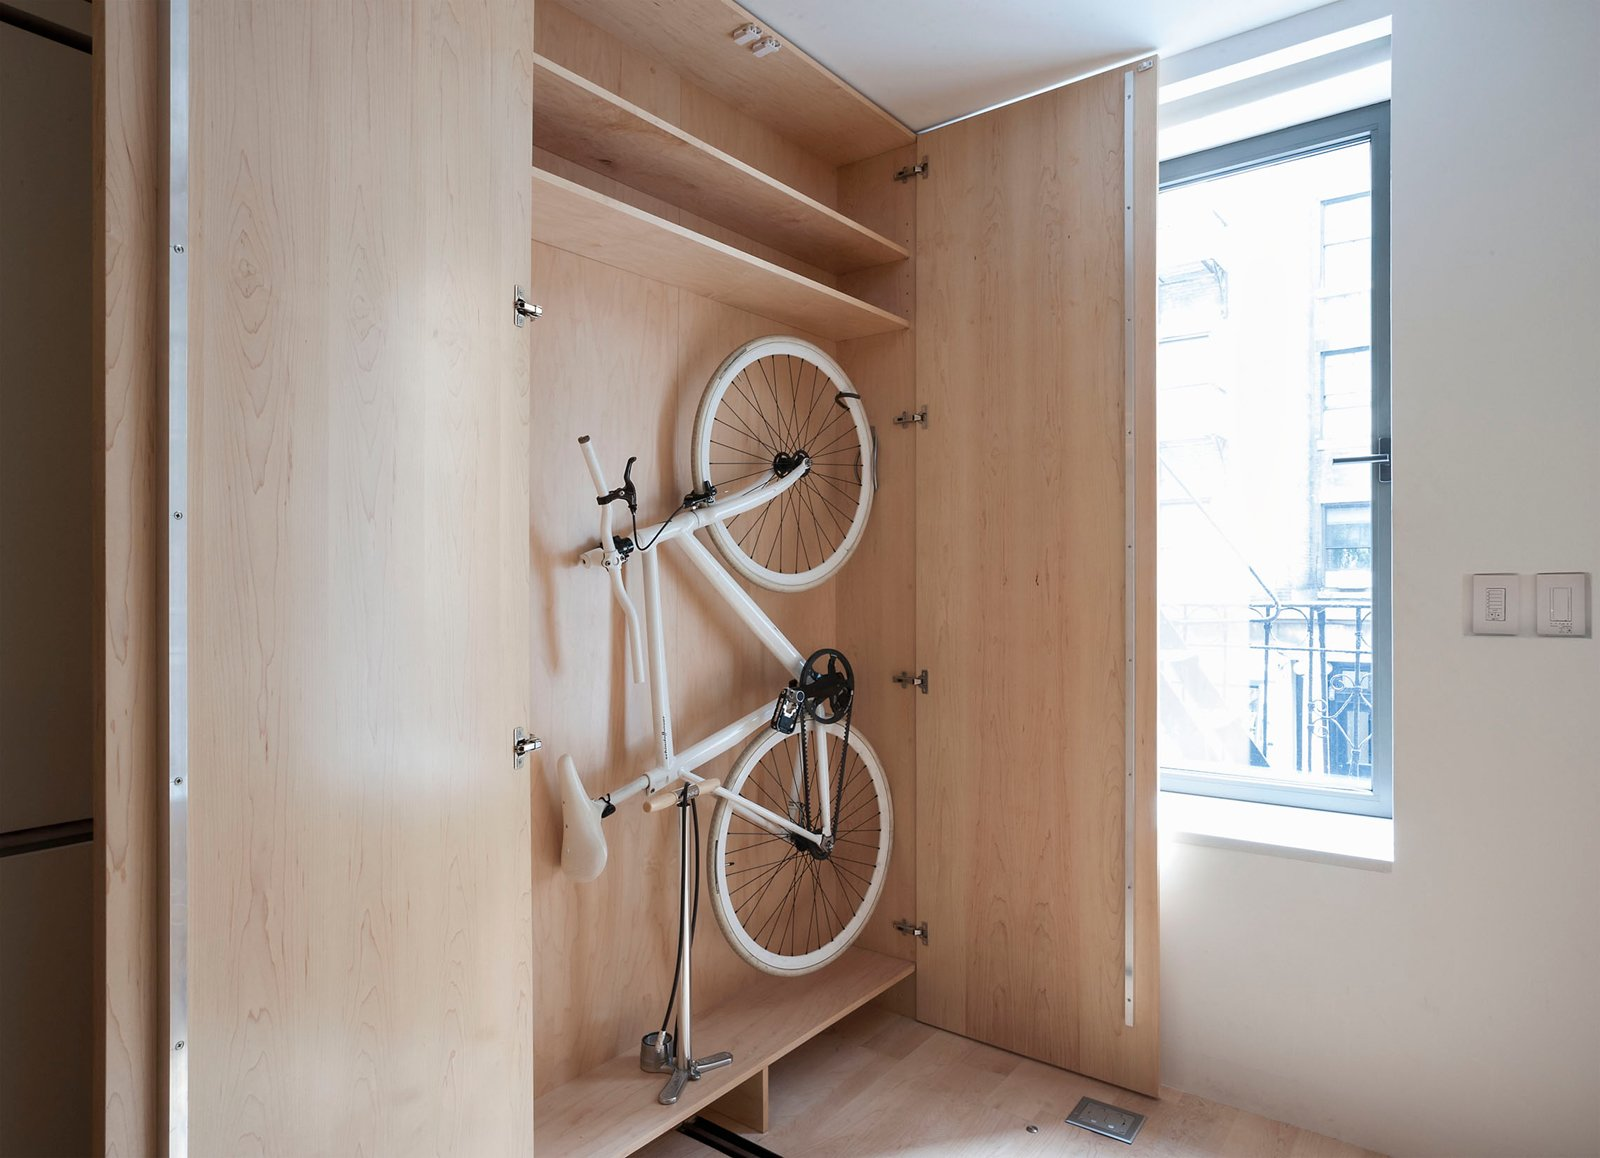 Hill's ThinBike, which he designed in partnership with Schindelhauer, features folding handlebars and pedals that allow it to easily fit snugly against a wall (or in this custom-sized cabinet).